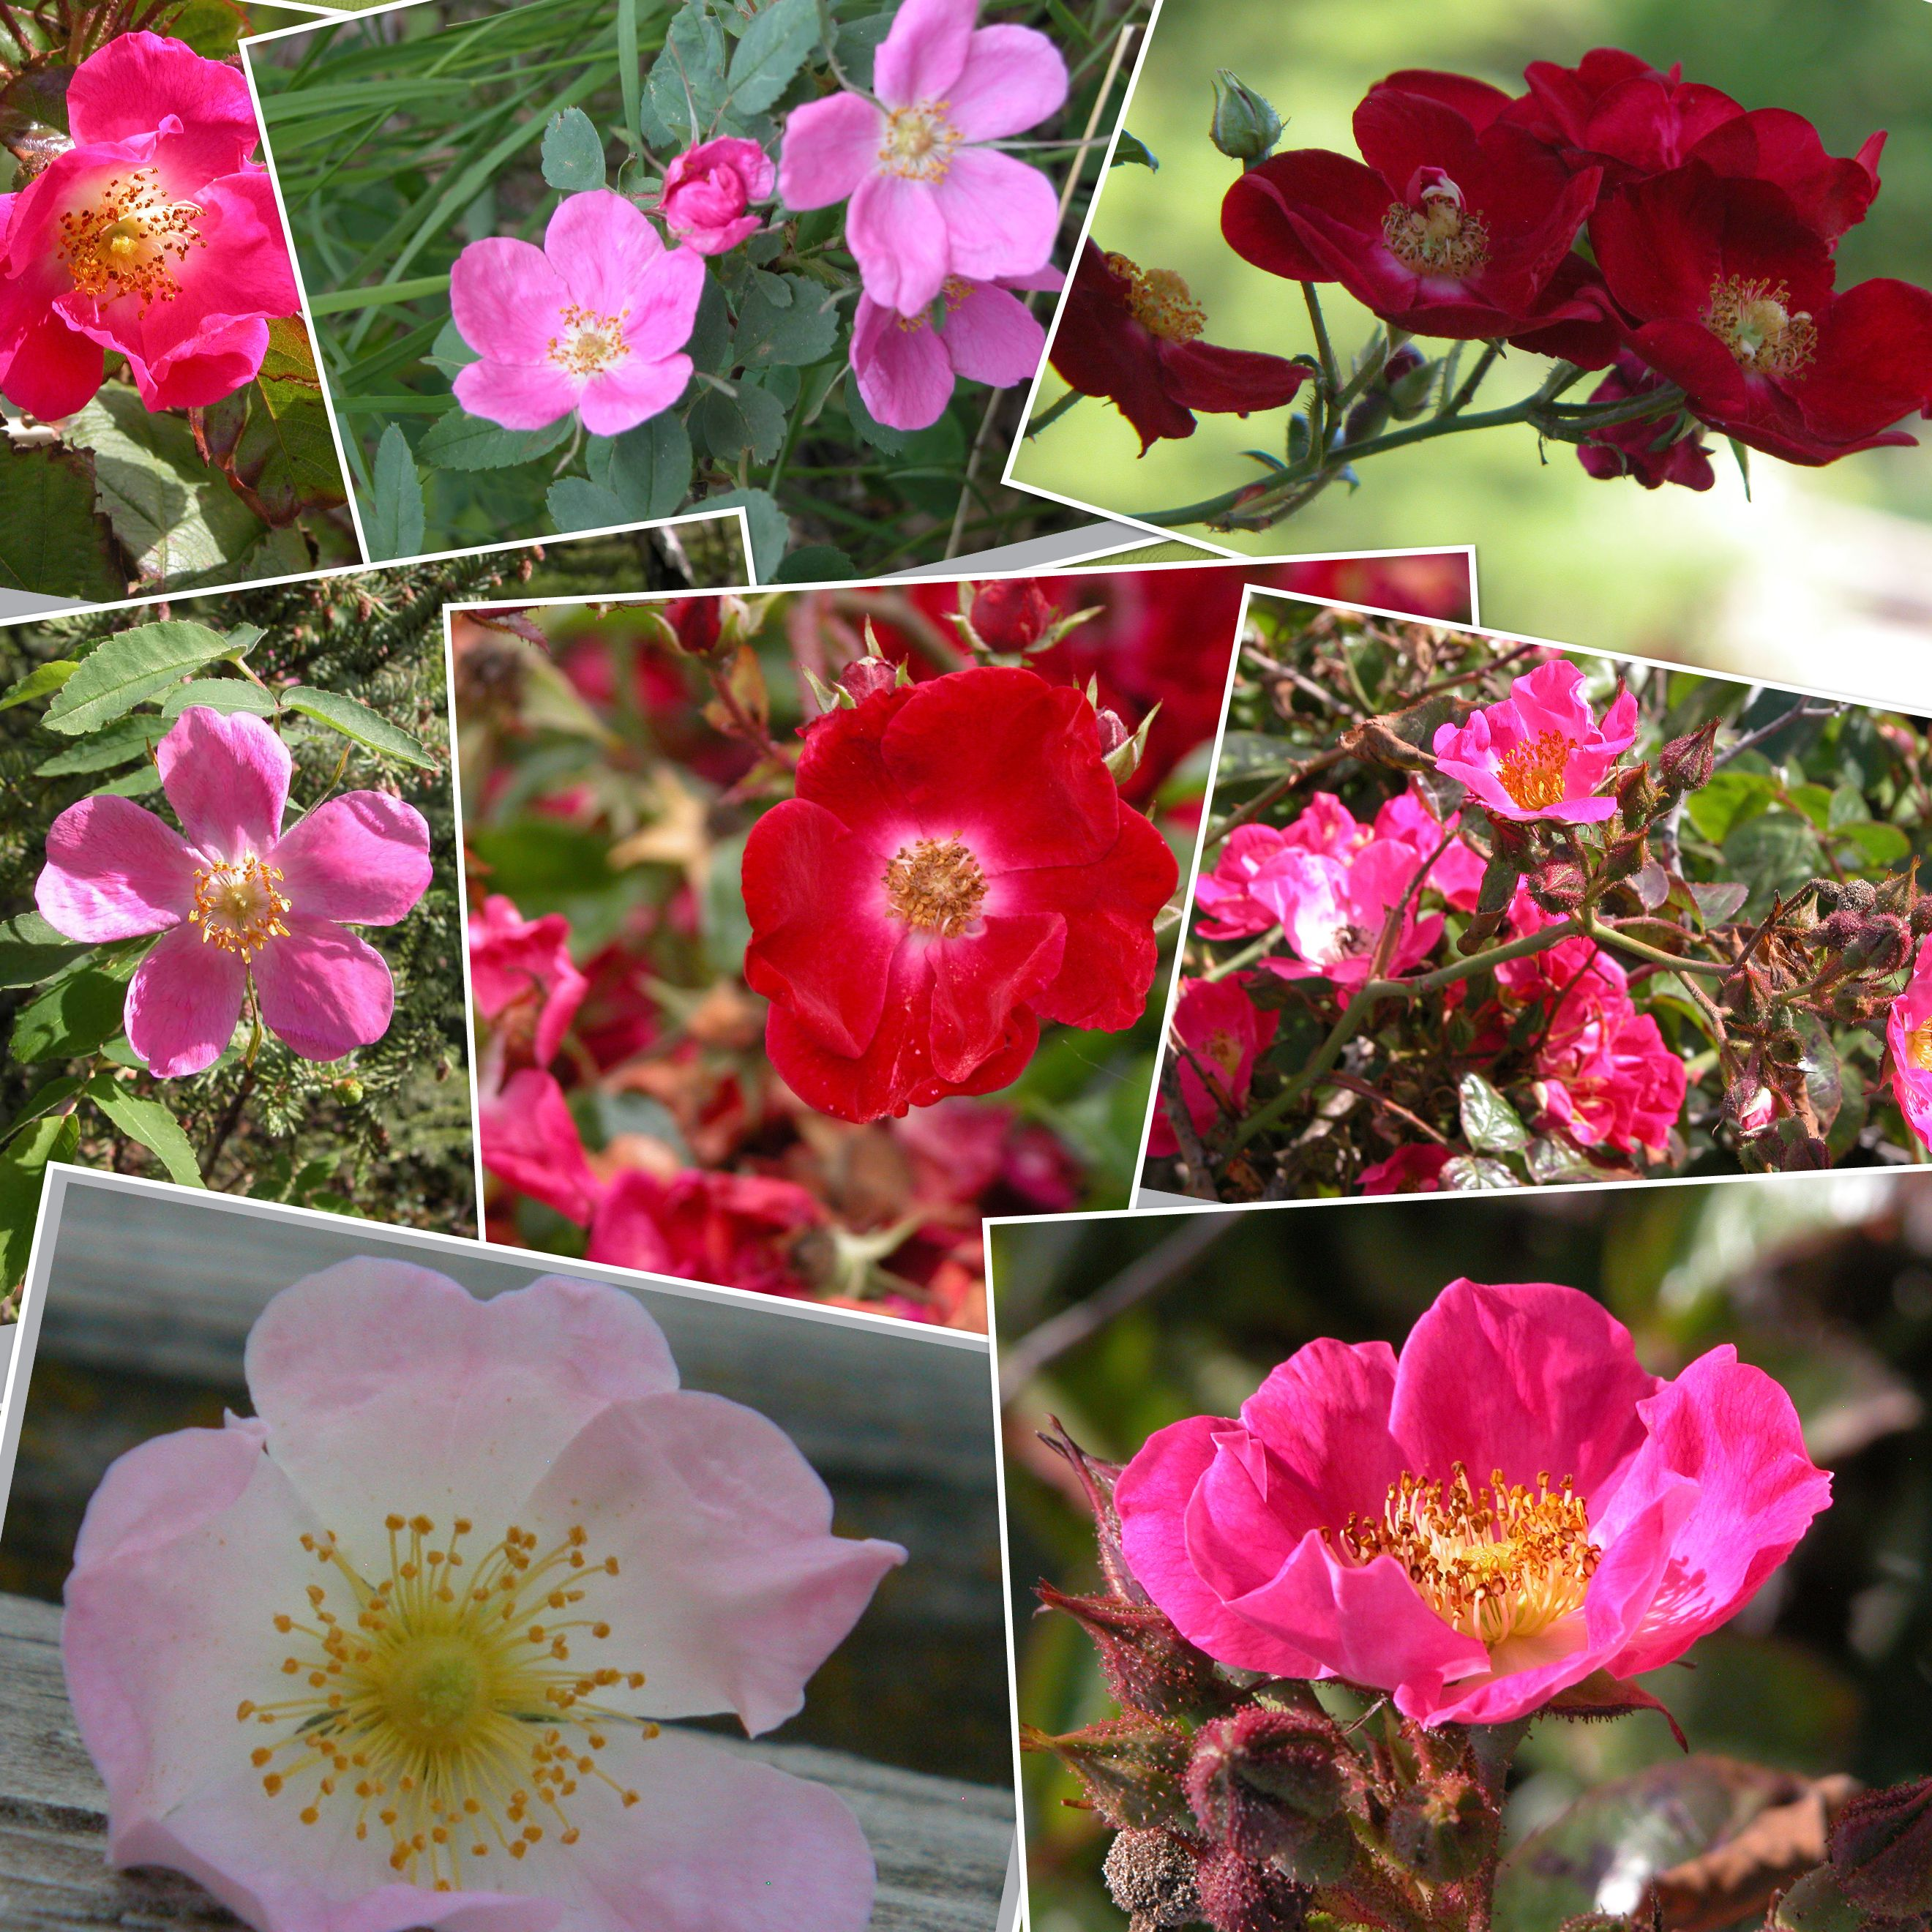 The wild Prairie Rose is the state flower of Iowa and